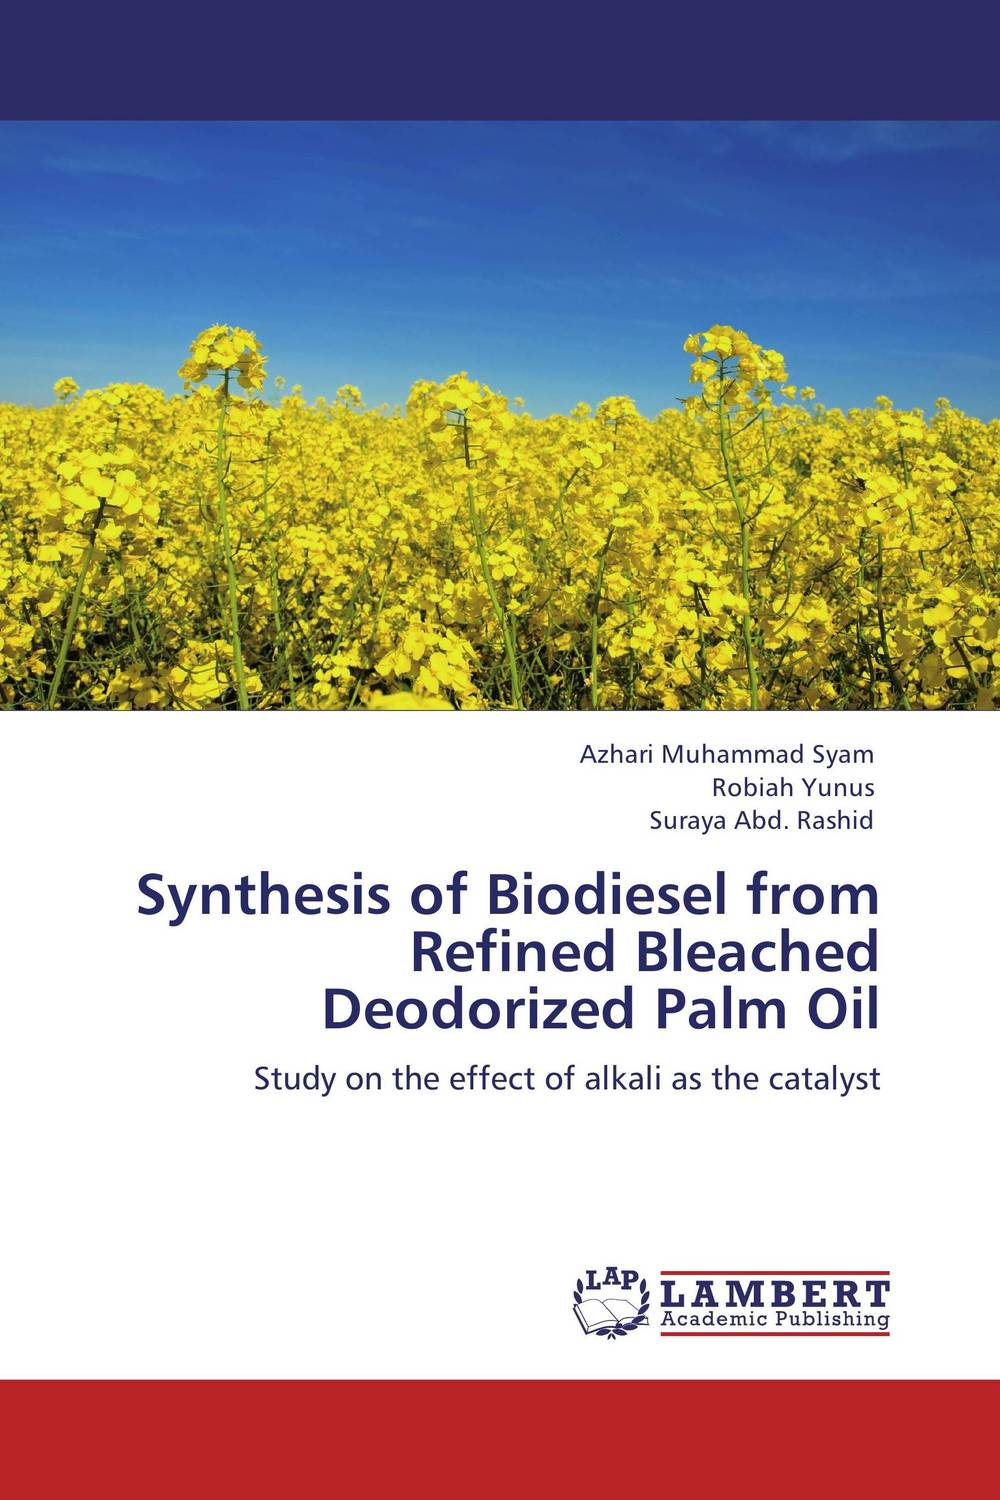 Synthesis of Biodiesel from Refined Bleached Deodorized Palm Oil biodiesel from algae